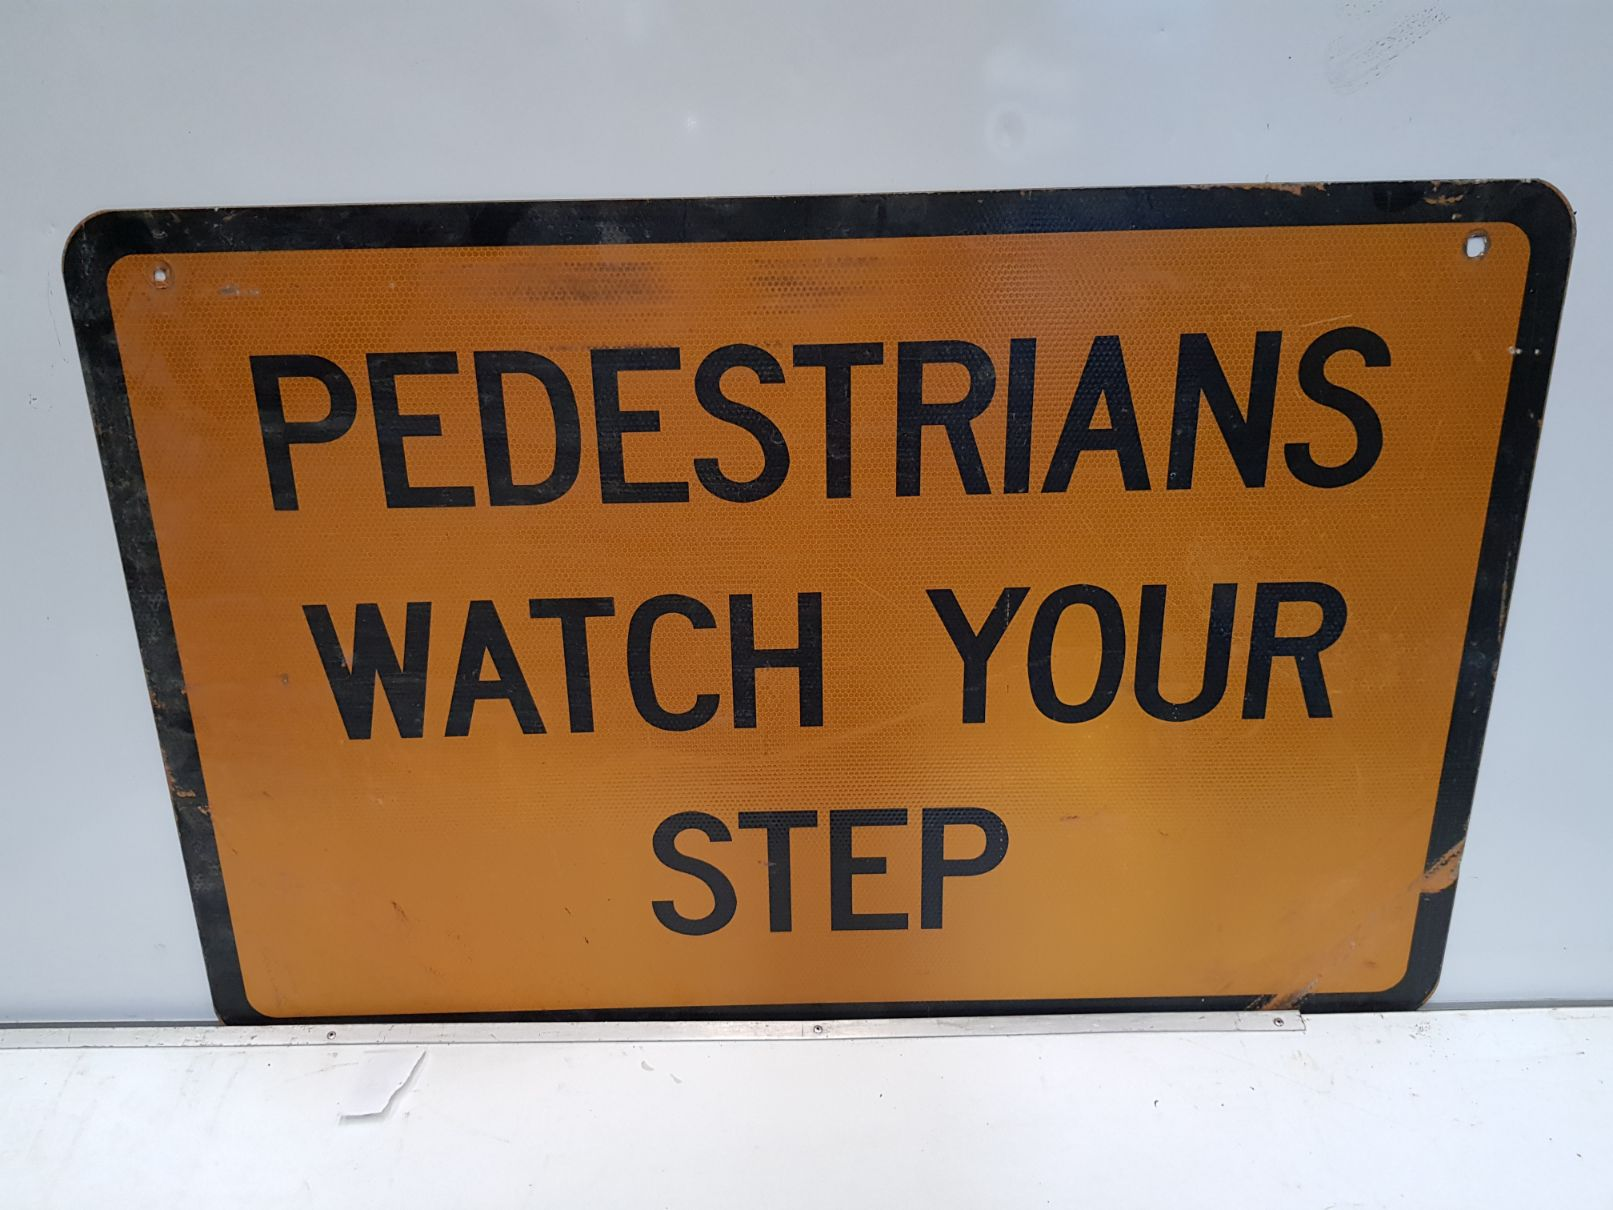 Pedestrians Watch Your Step Boxed Edge Sign (2).jpg